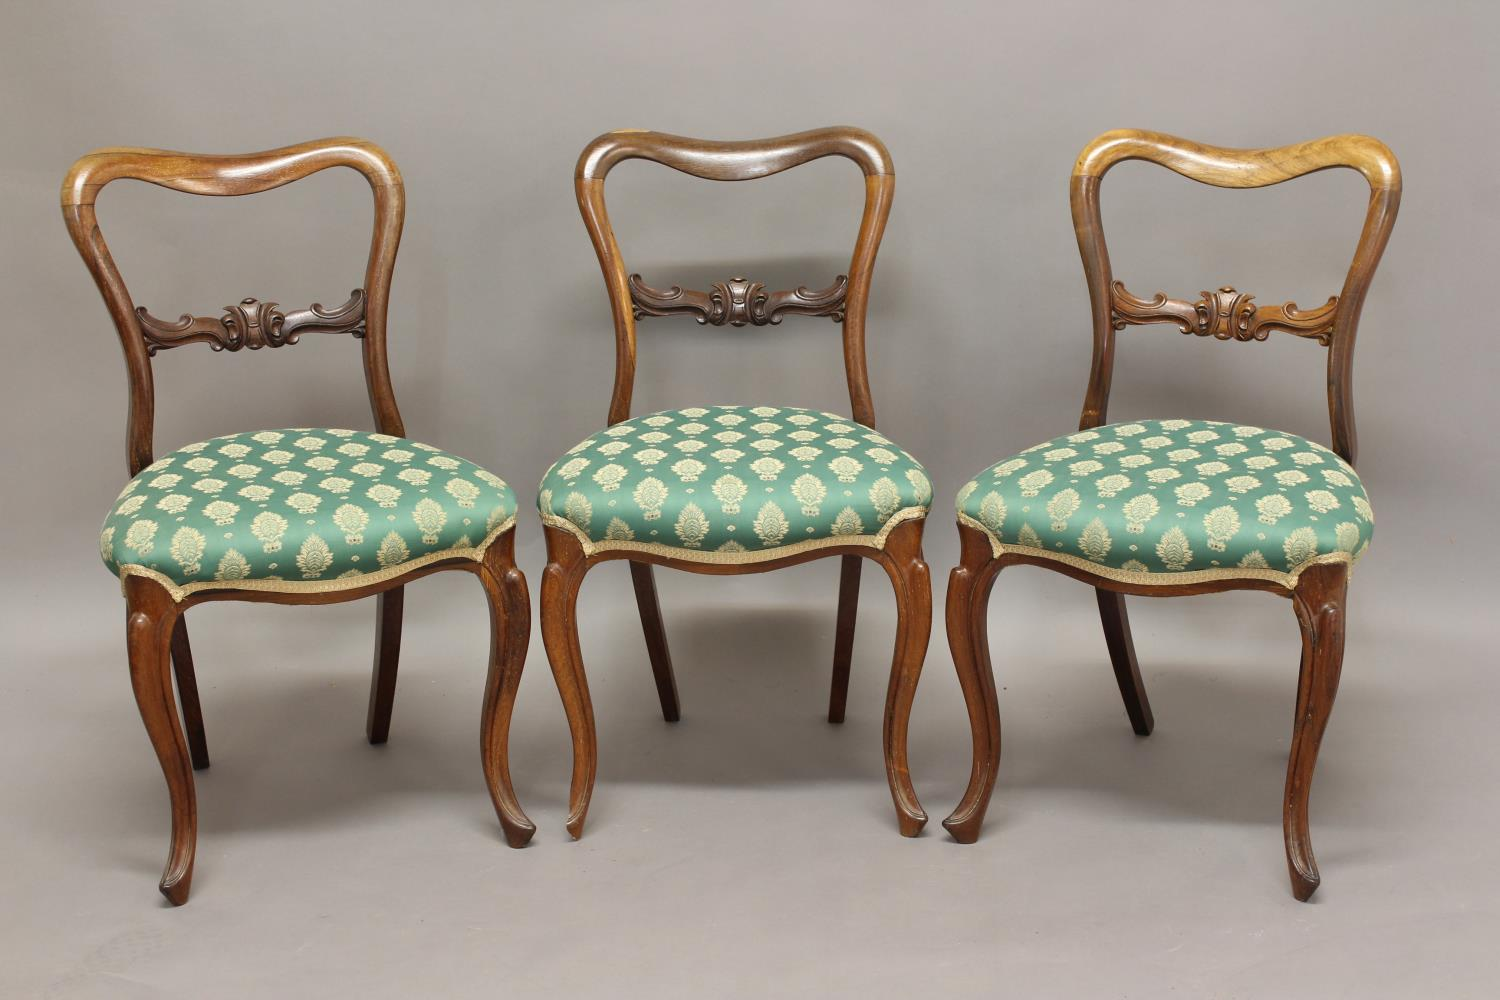 A SET OF FOUR 19TH CENTURY ROSEWOOD DINING CHAIRS, with carved bar splats on cabriole legs, height